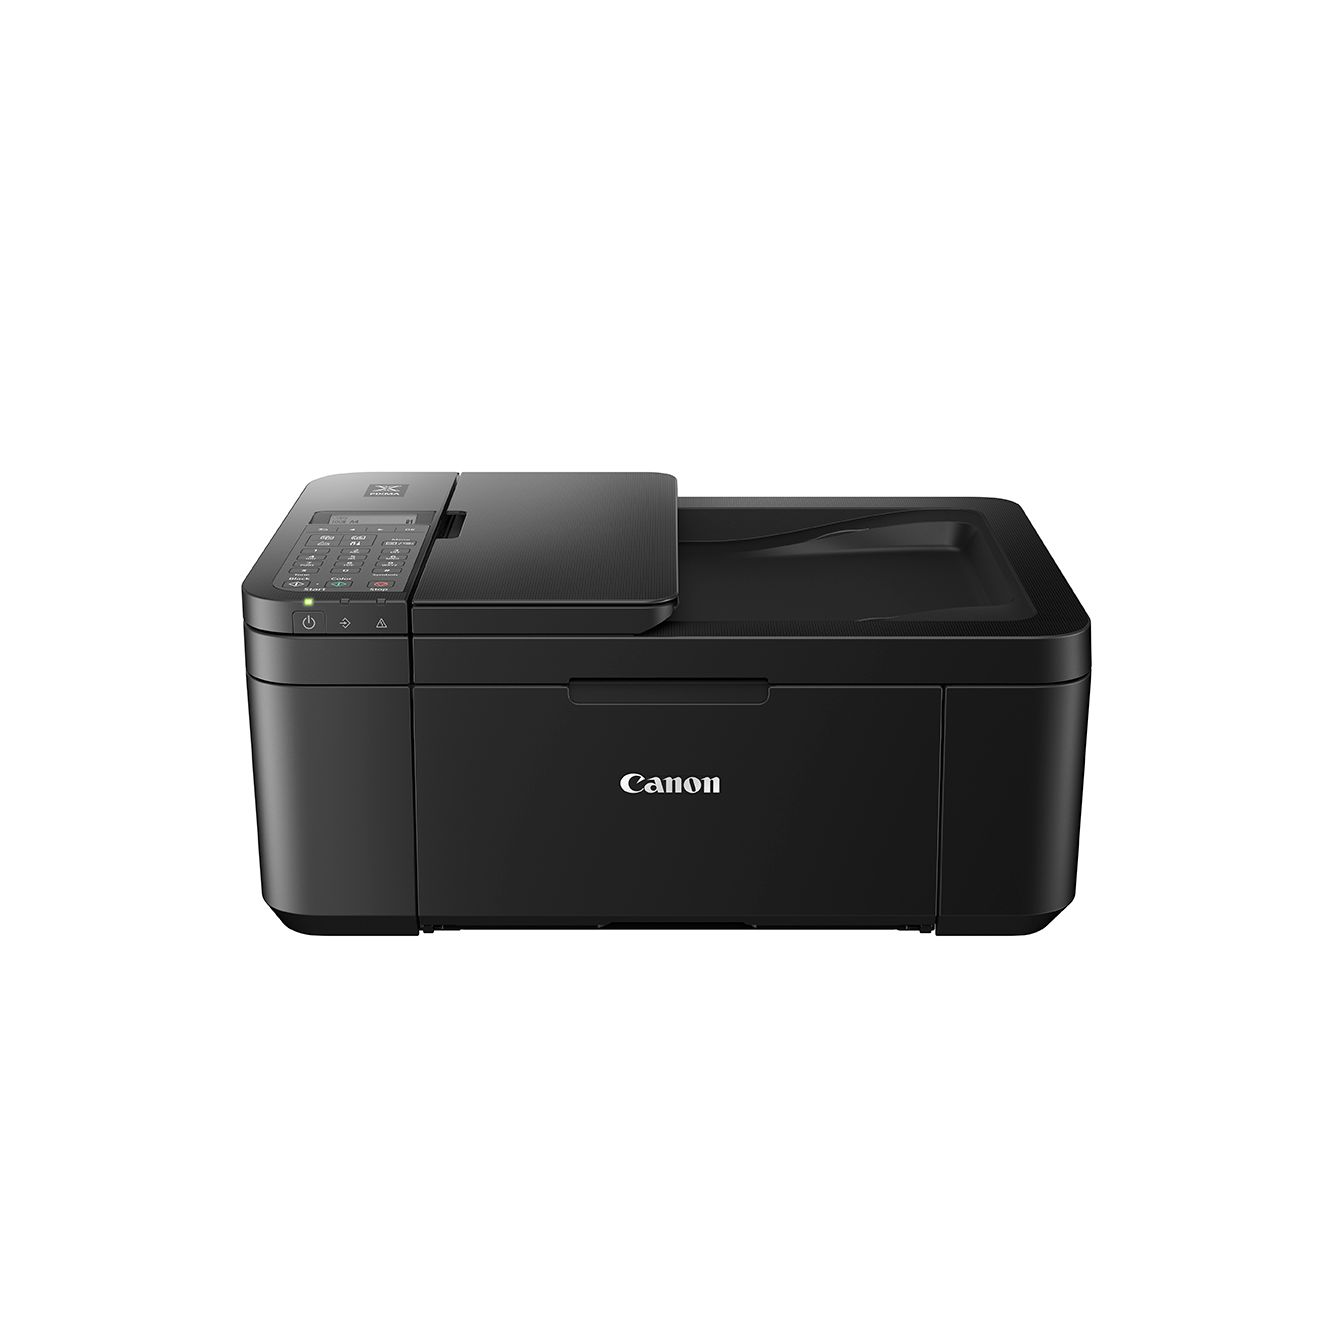 Canon Pixma Ts6220 Wireless Color Inkjet All In One Printer Scanner Printed Circuit Board Transfer Film Works With Plain Paper Copiers Tr4520 Black Office